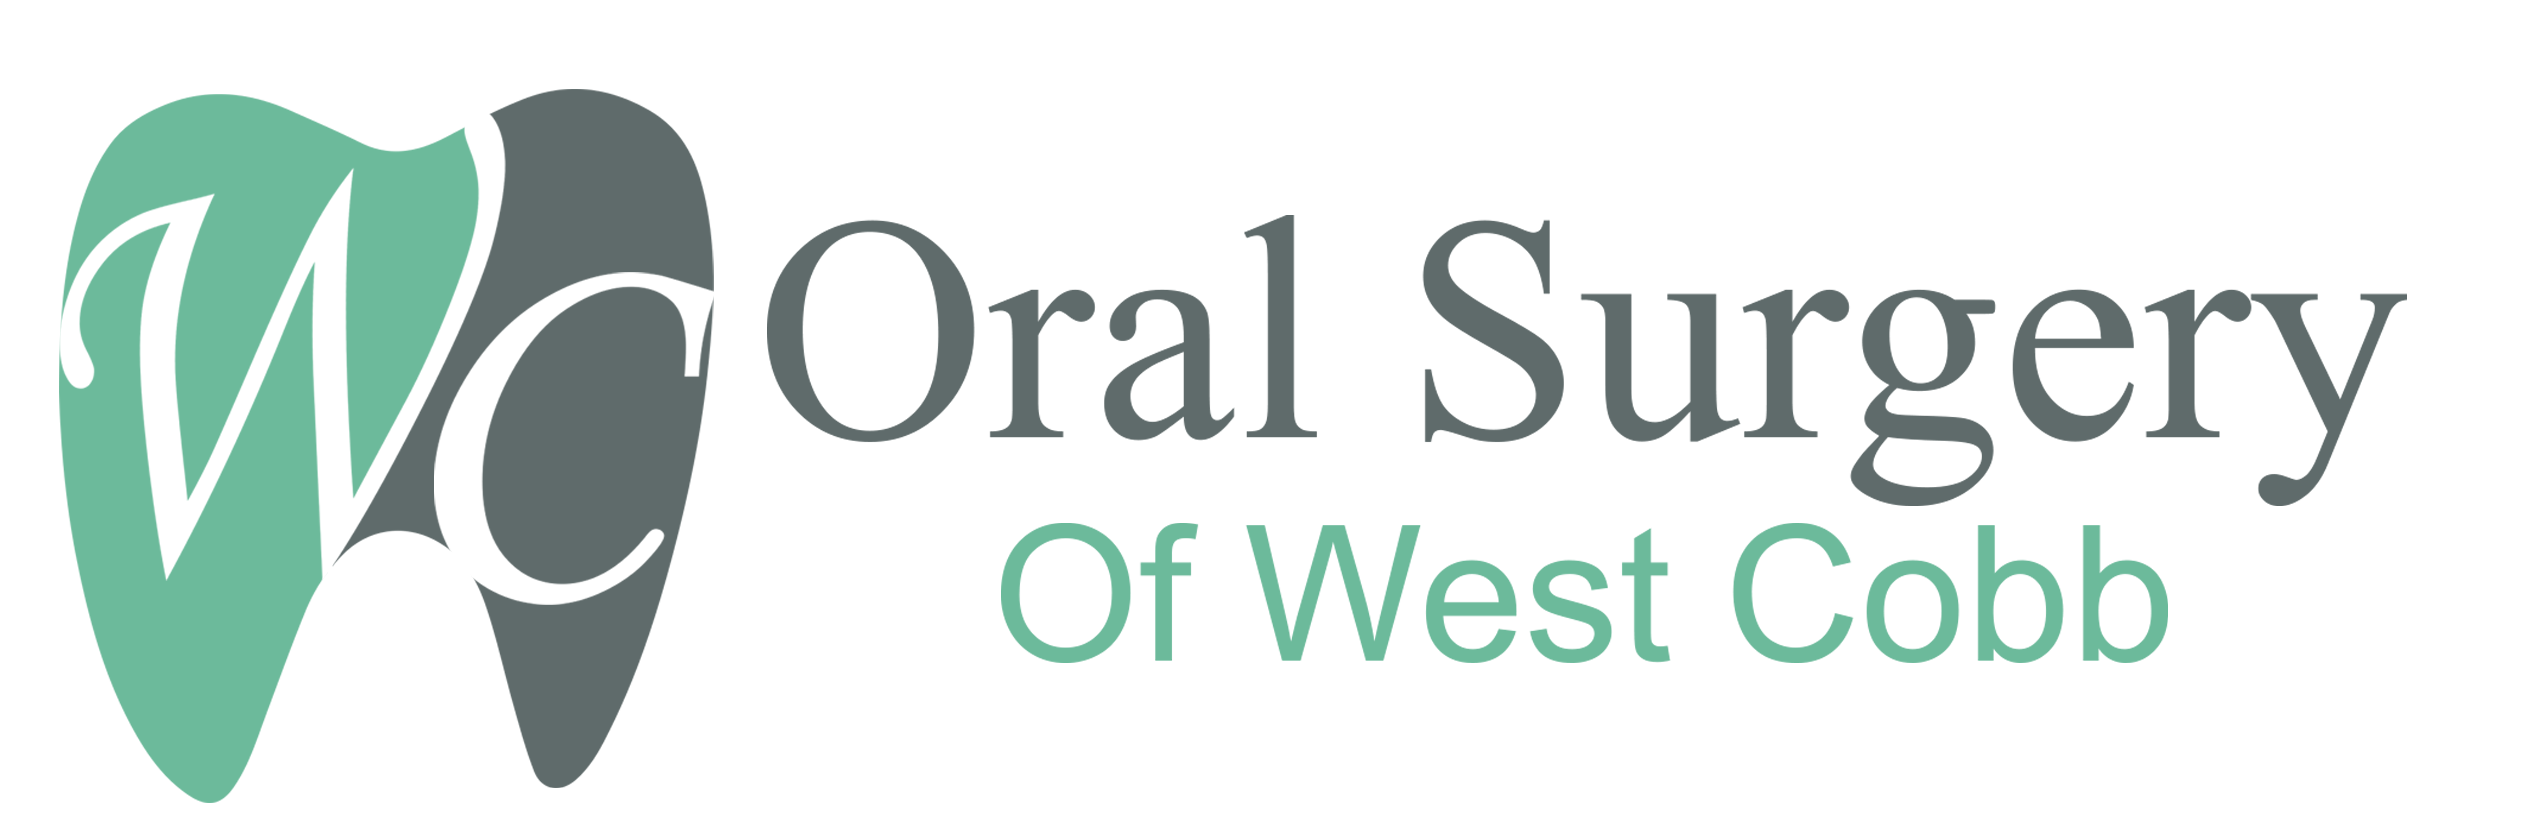 Oral Surgery of West Cobb